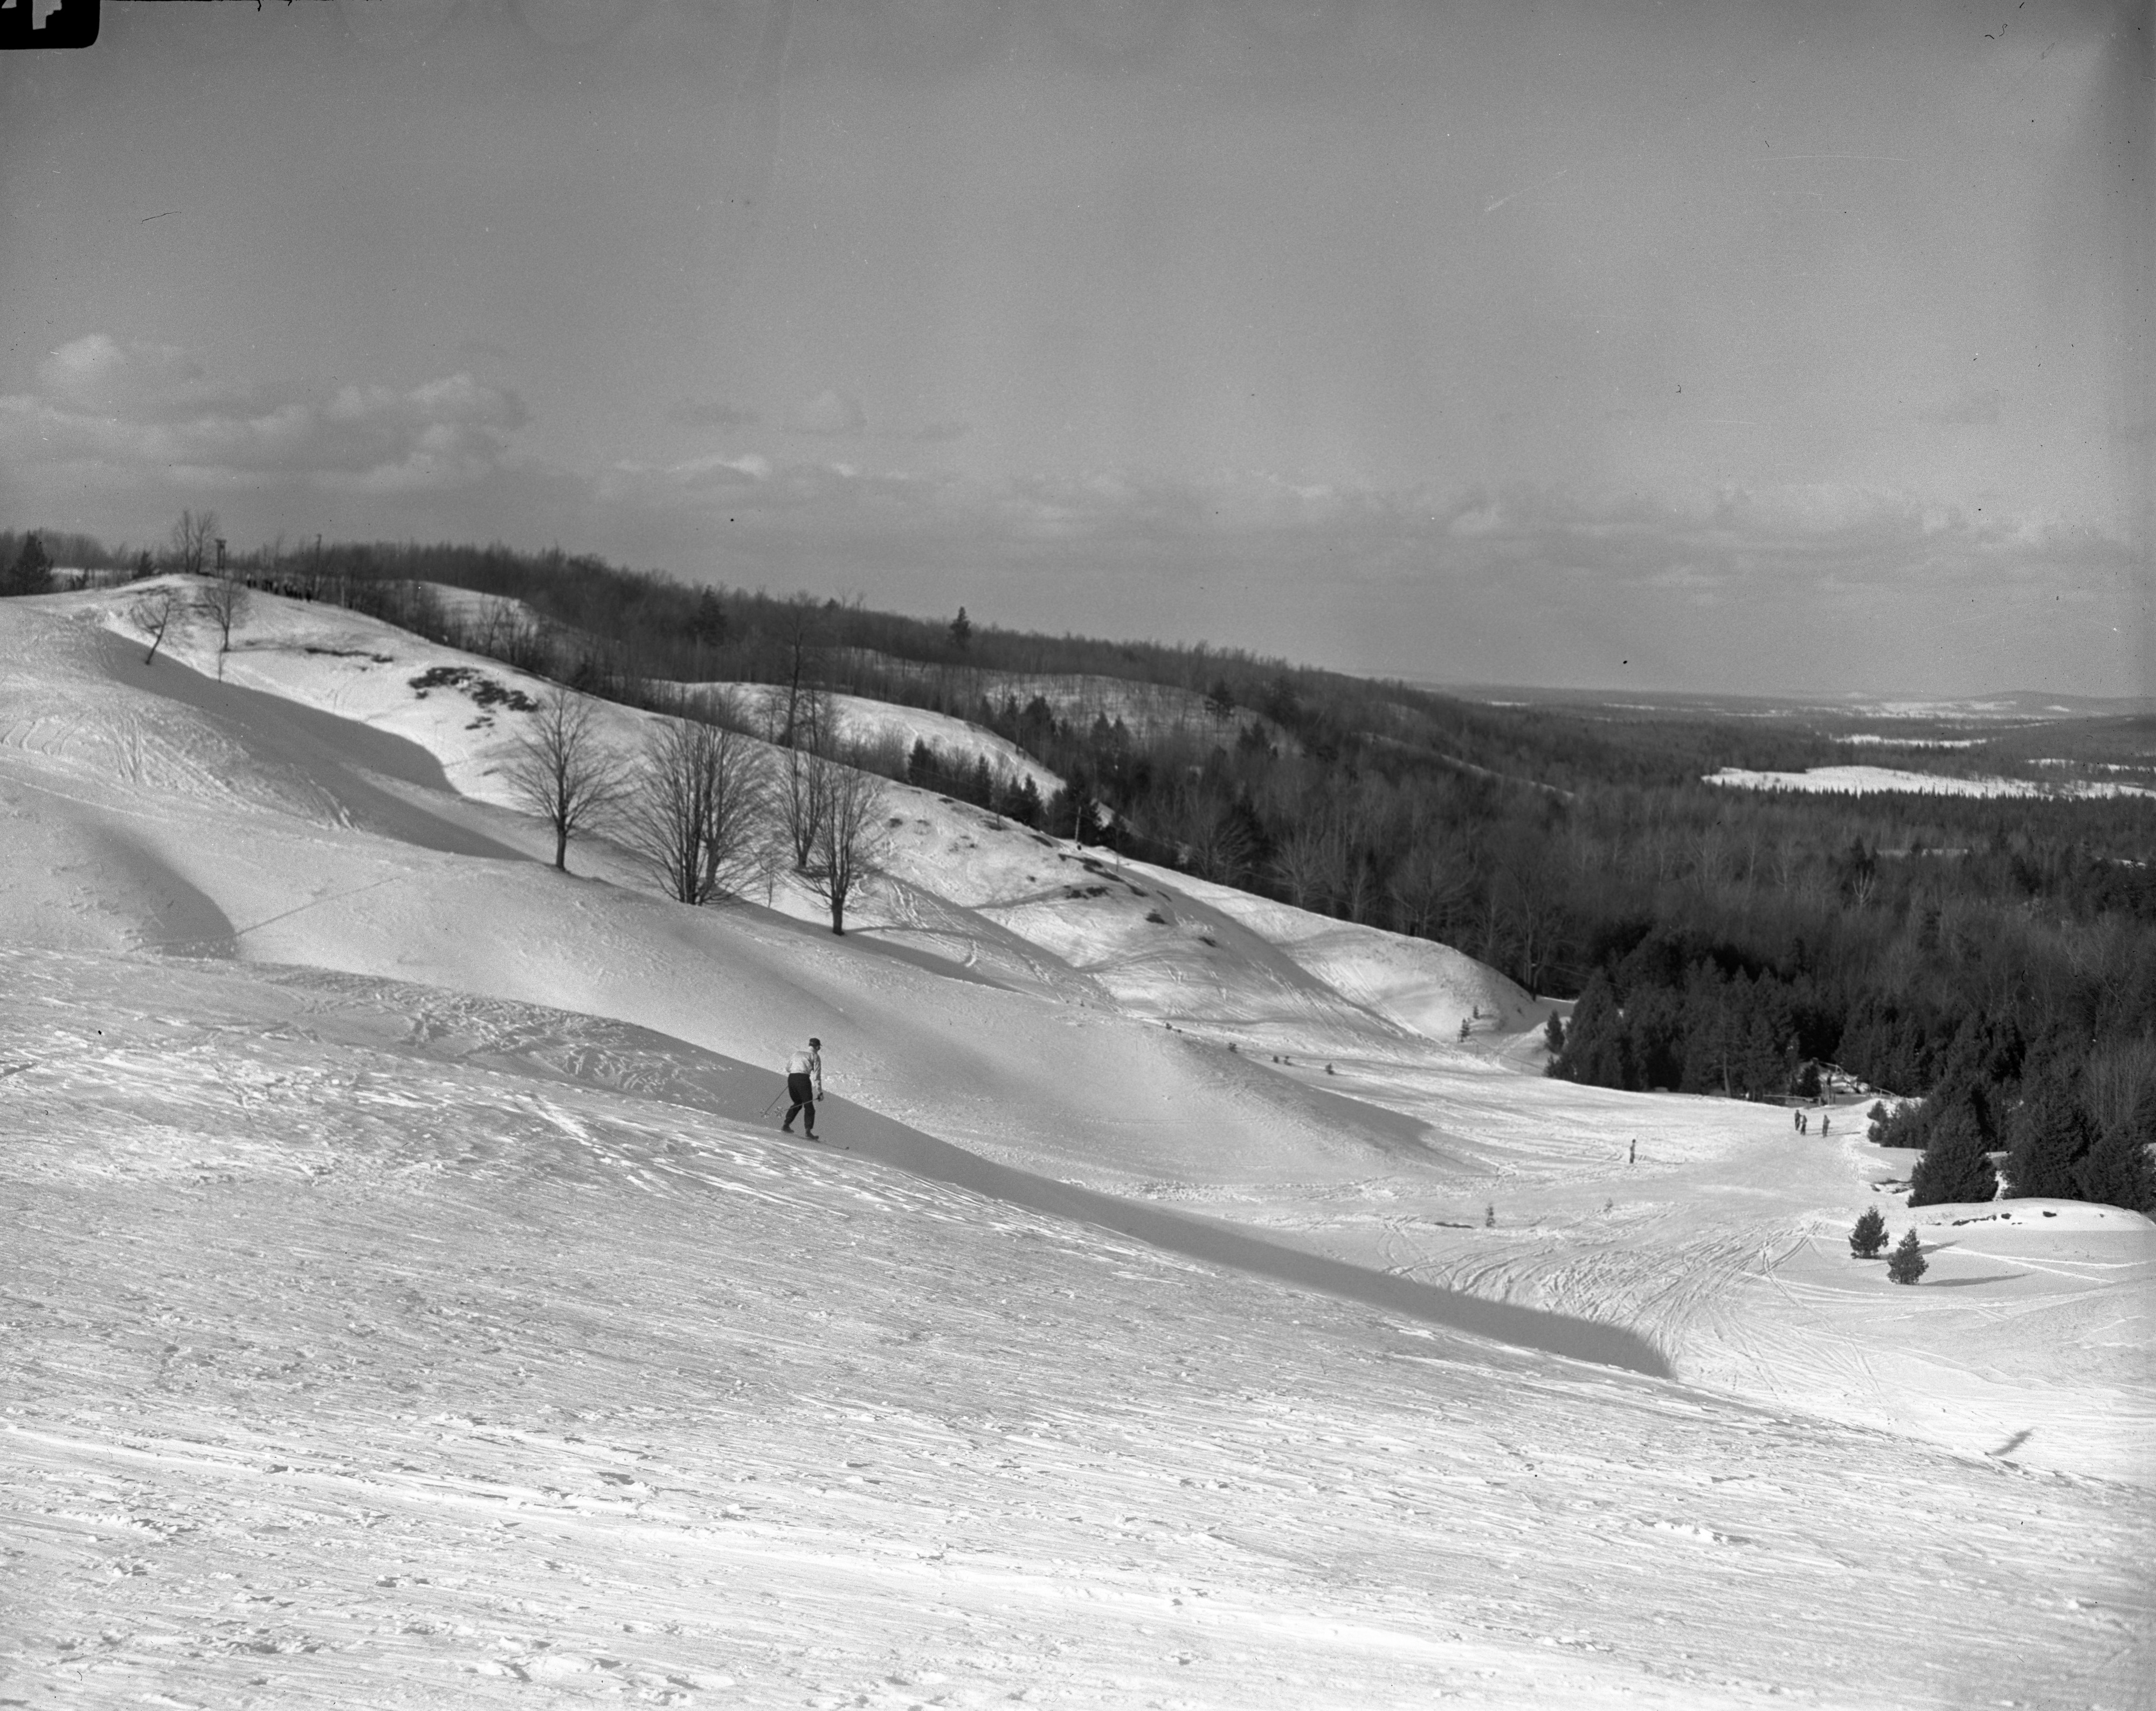 Skier At The Otsego Club In Gaylord, February 1946 image